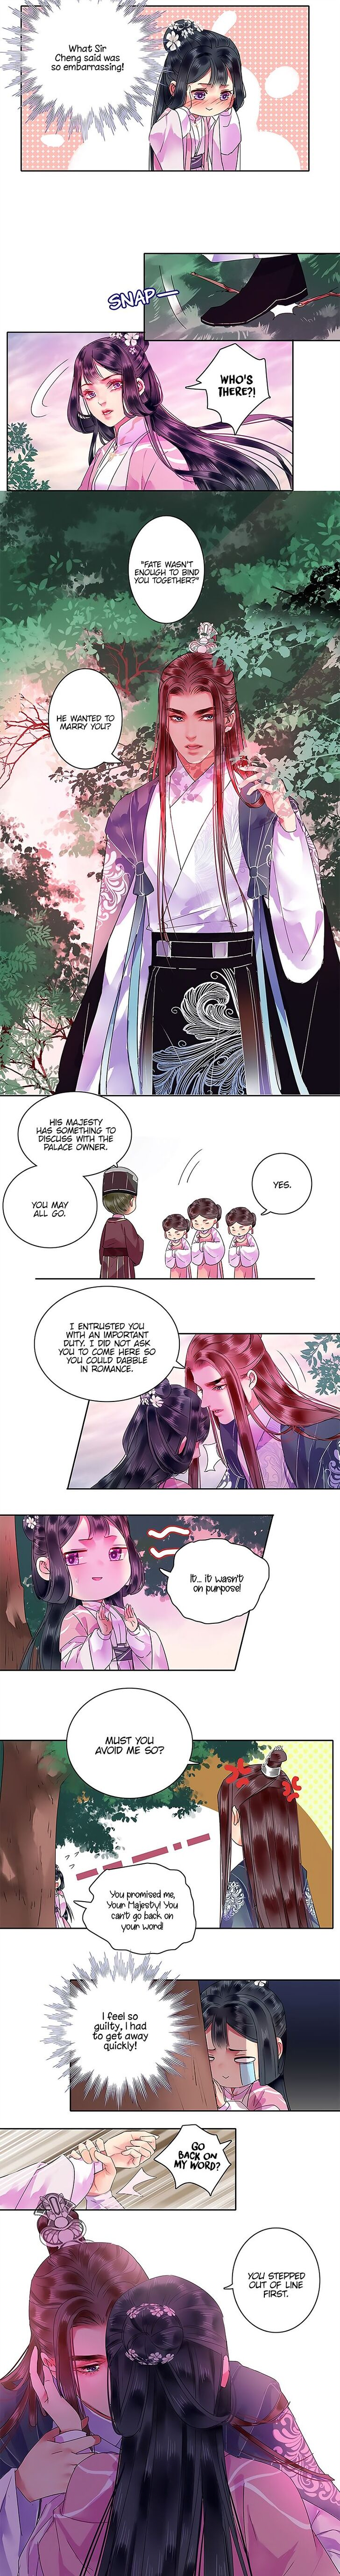 i'm a Tyrant in His Majesty's Harem - chapter 121 - #2